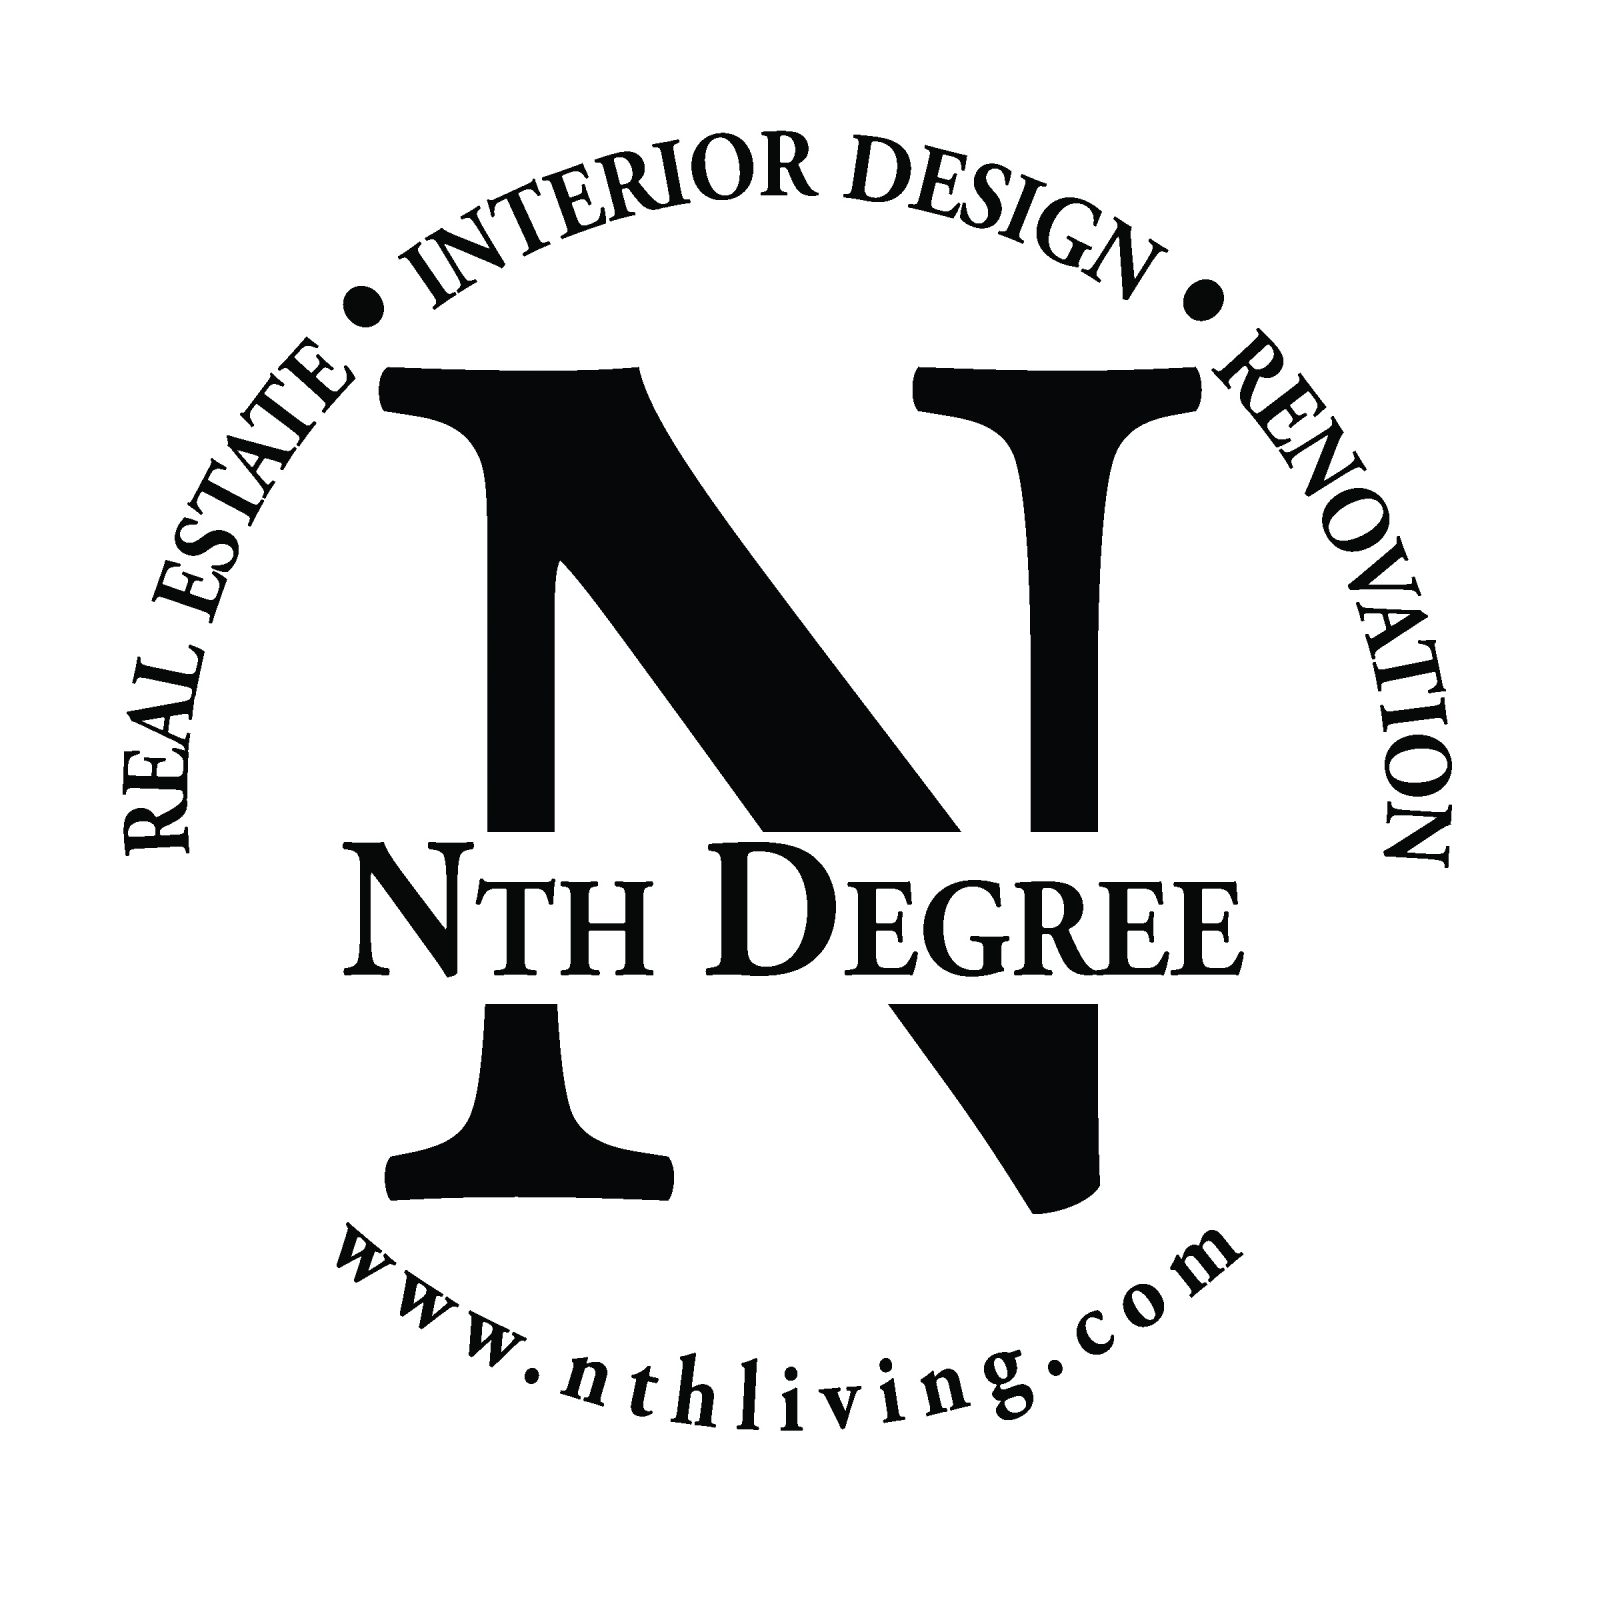 Nth Degree Interior Design and Renovation